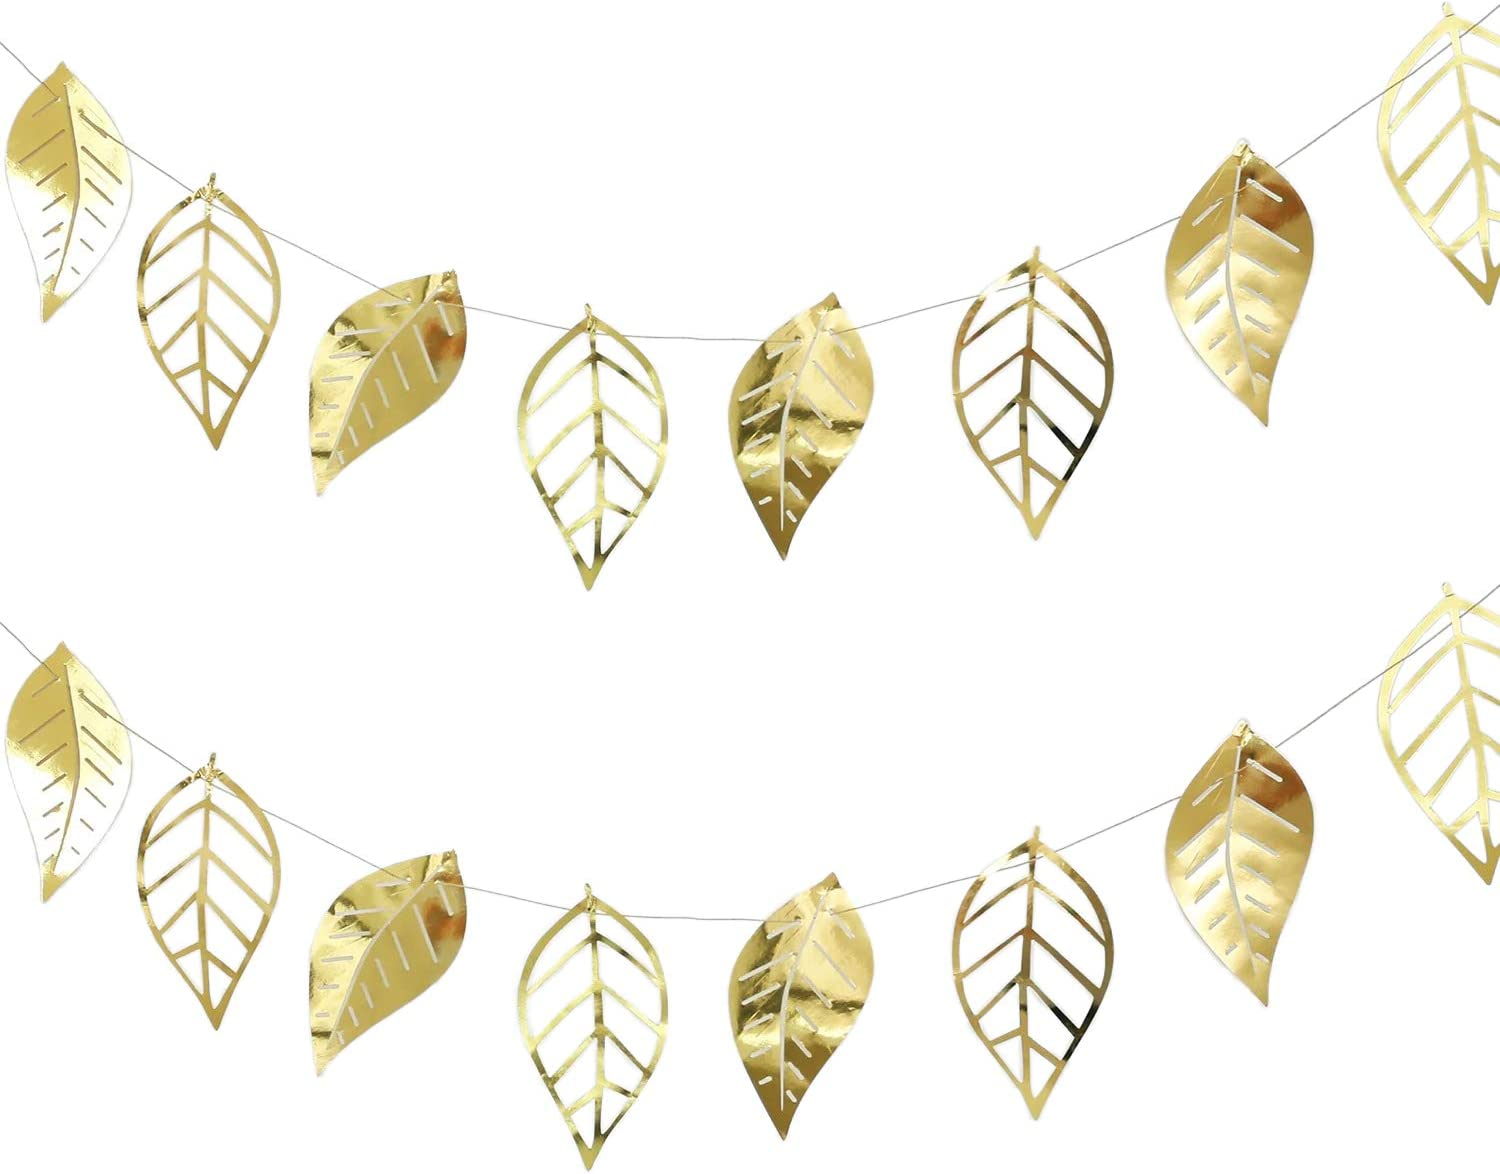 Metallic Gold Leaf Garland - Large Paper Leaves Hanging Decorations for Weddings, Bridal Showers, Elegant Backdrops, Boho Table Decor, and Nature Theme (2 Pack)